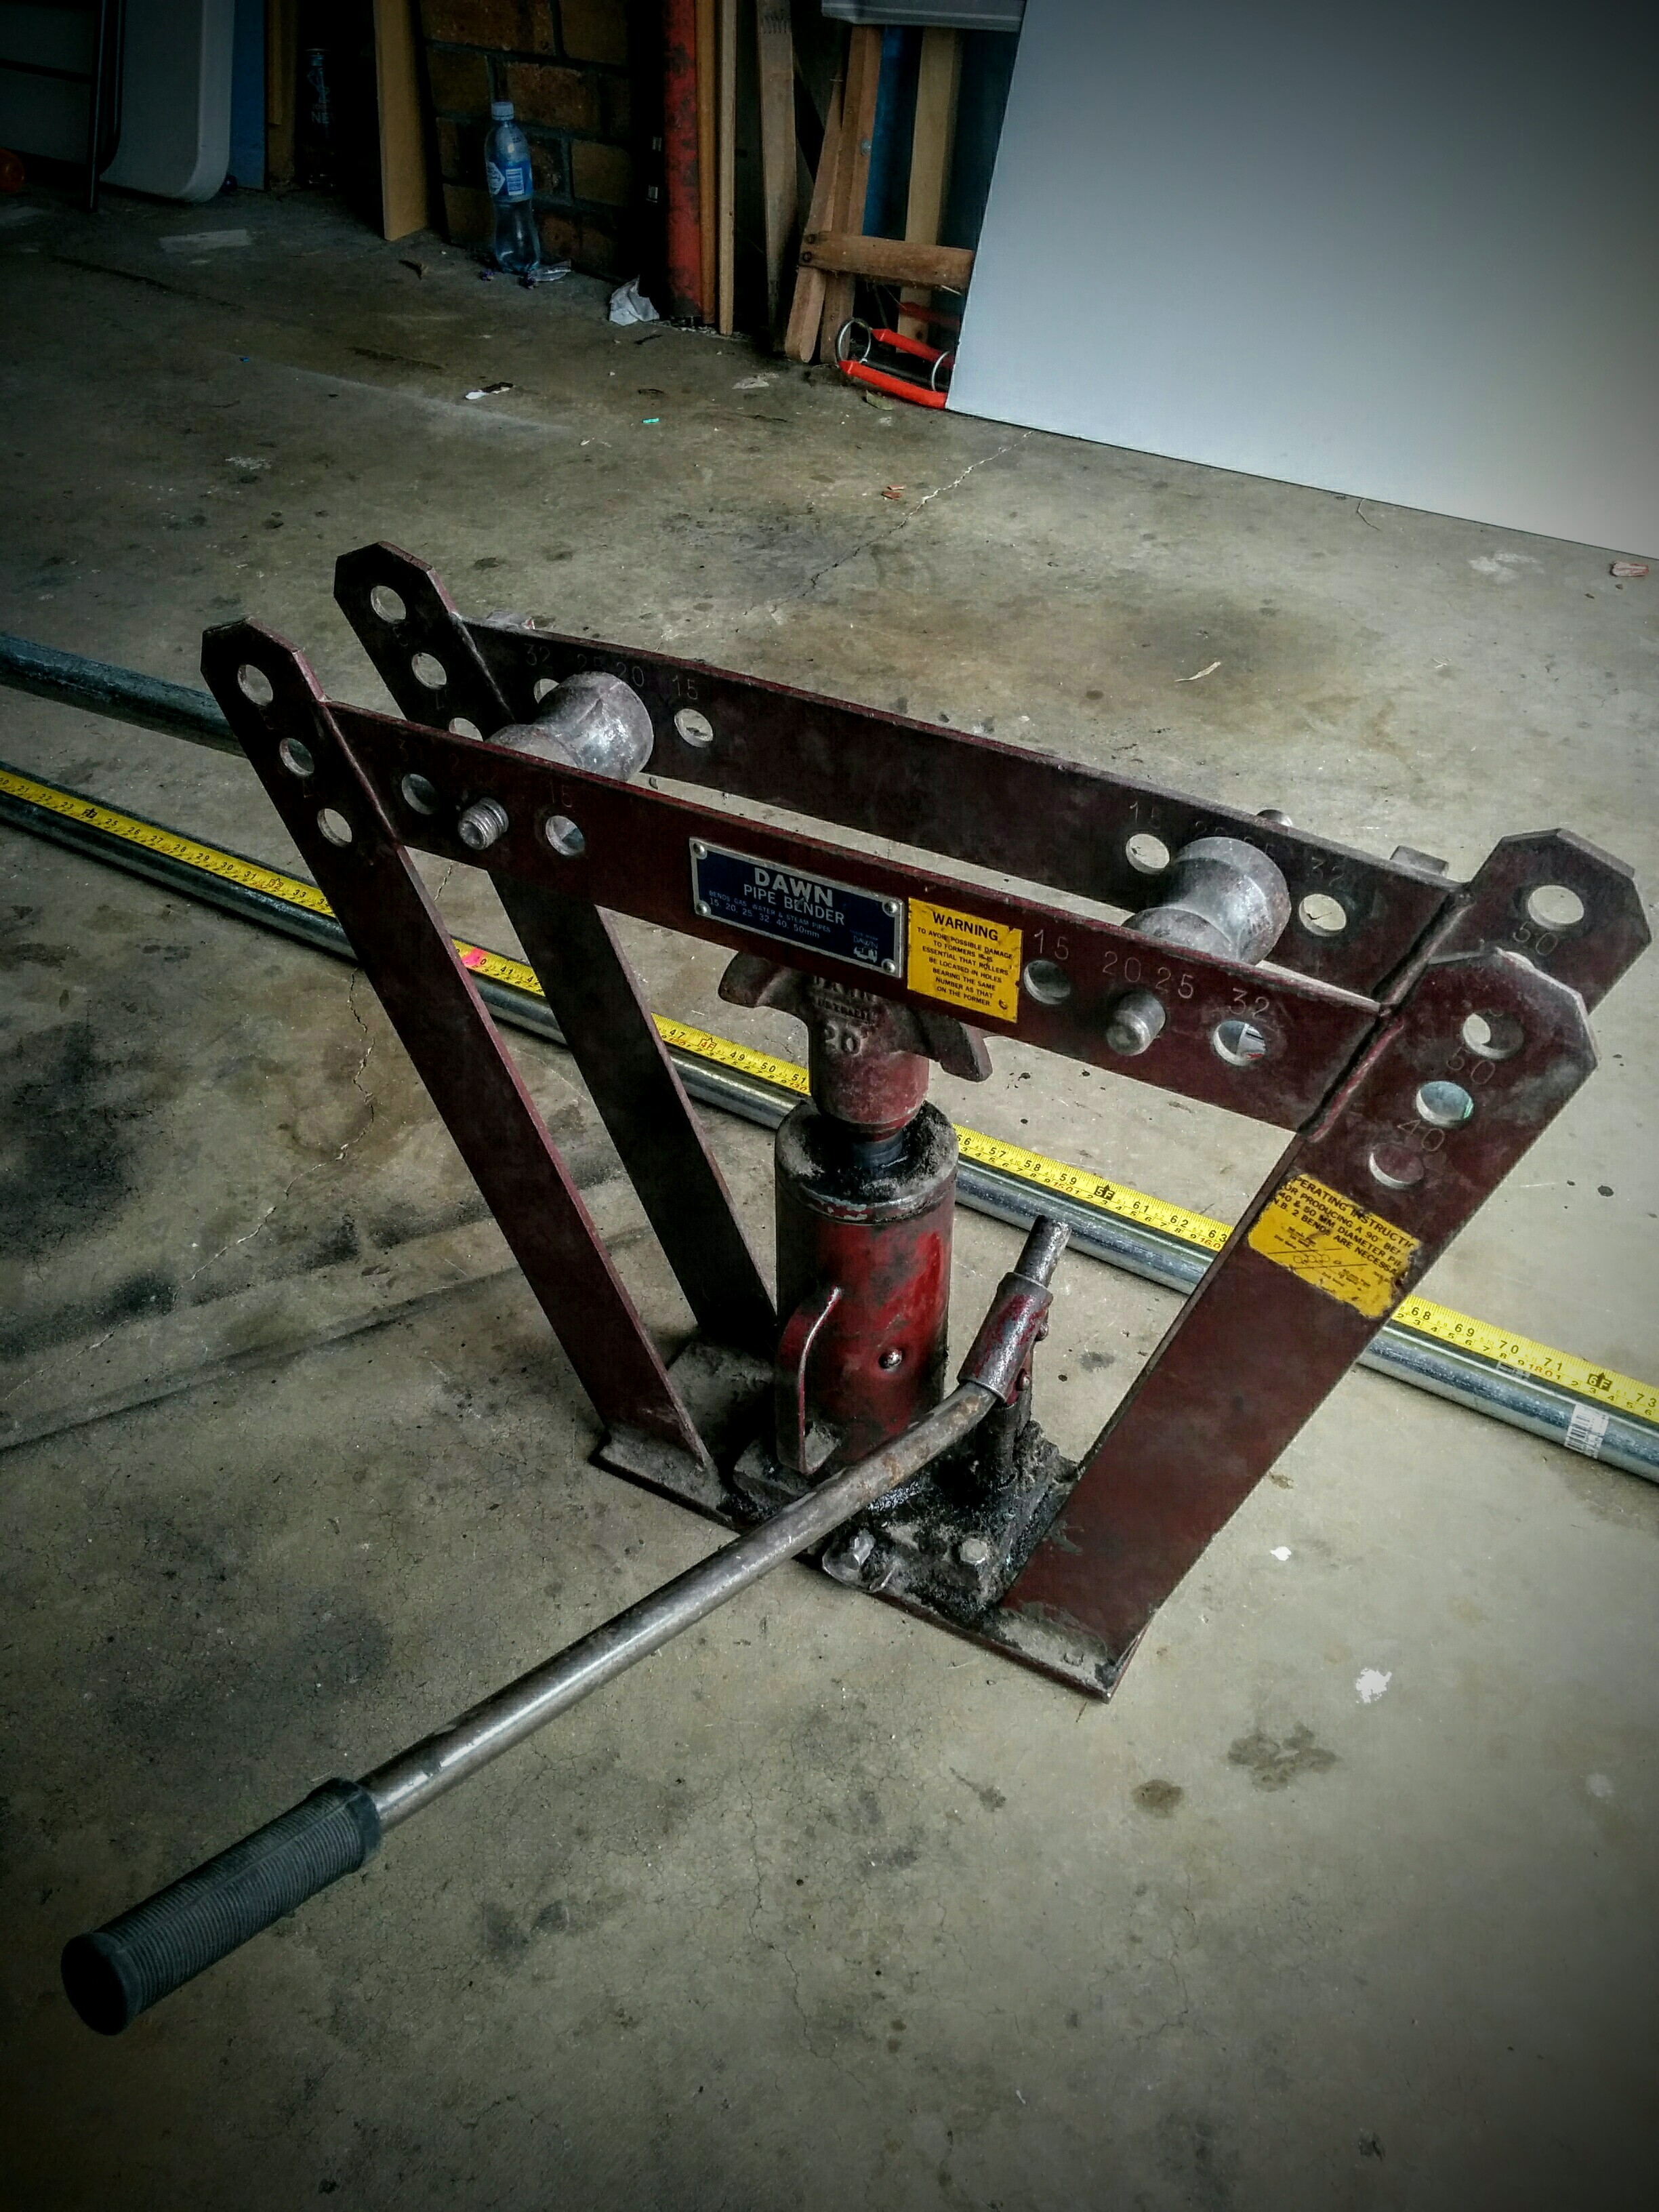 Diy spa cover lifter home made for metal conduit frame